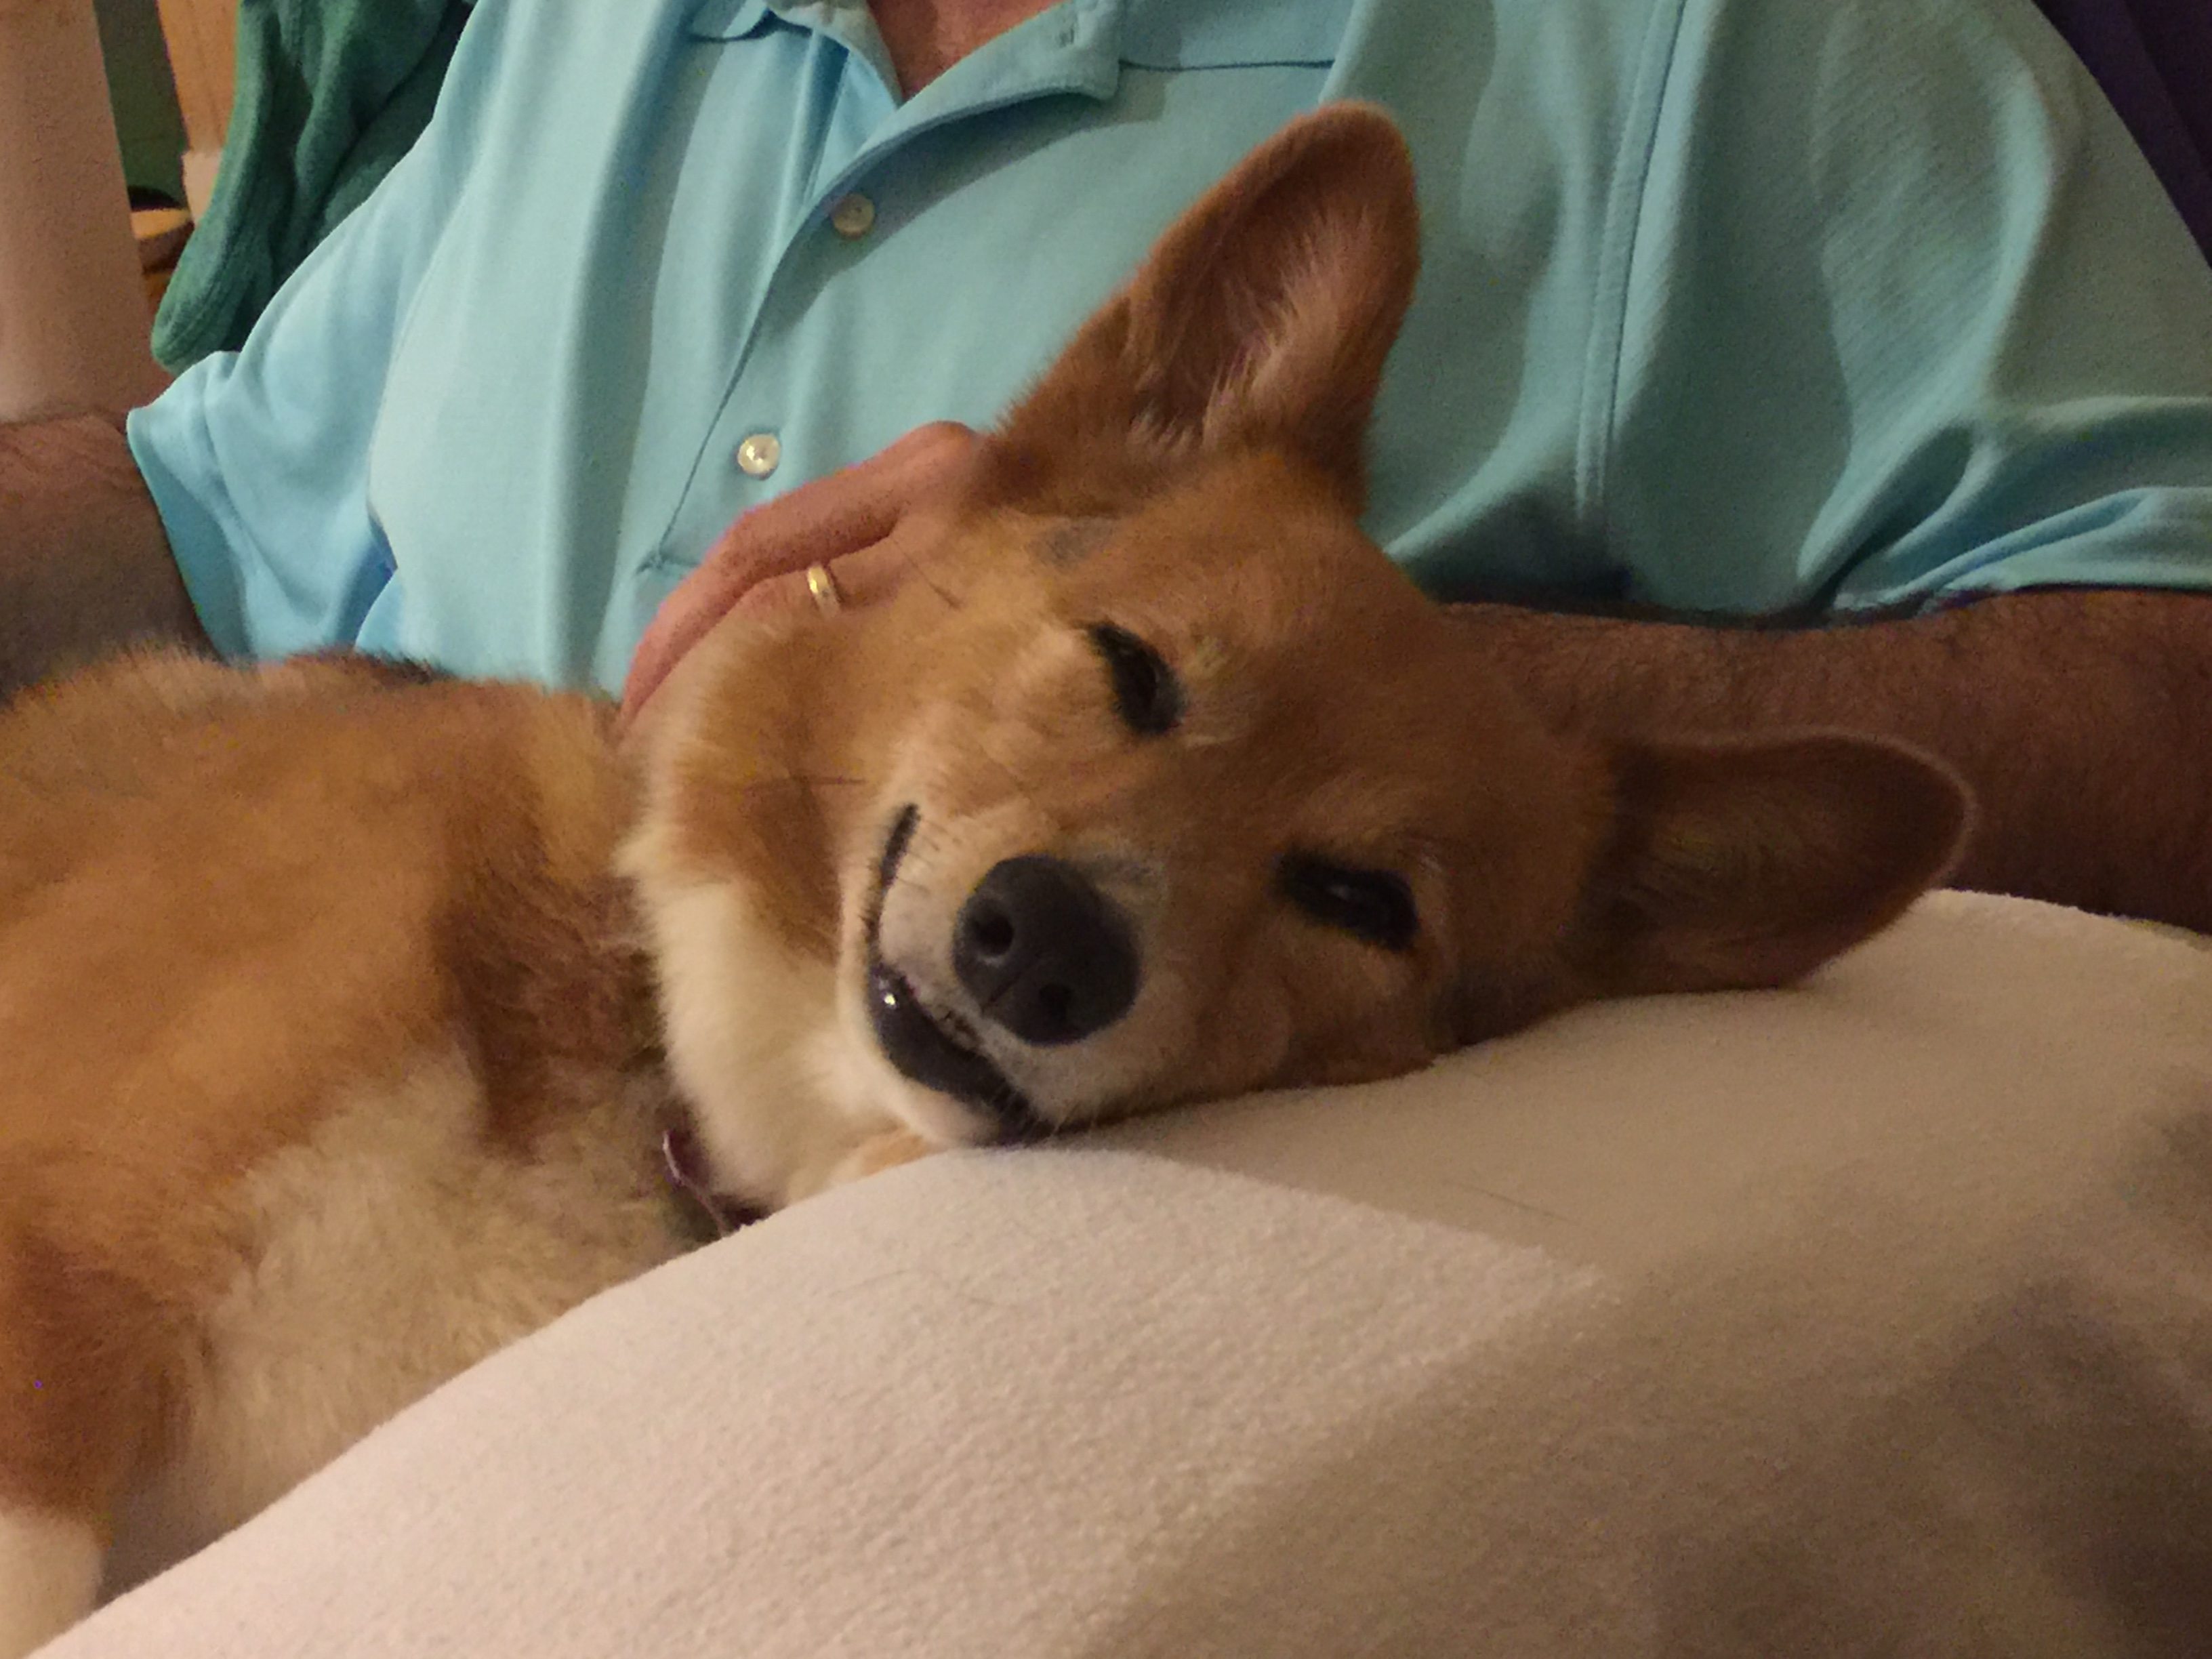 Griffin enjoyed all three of his favorite things on the day this picture was taken: a long walk on the beach, dinner, and sleeping on Dad's lap. HAPPY CORG!